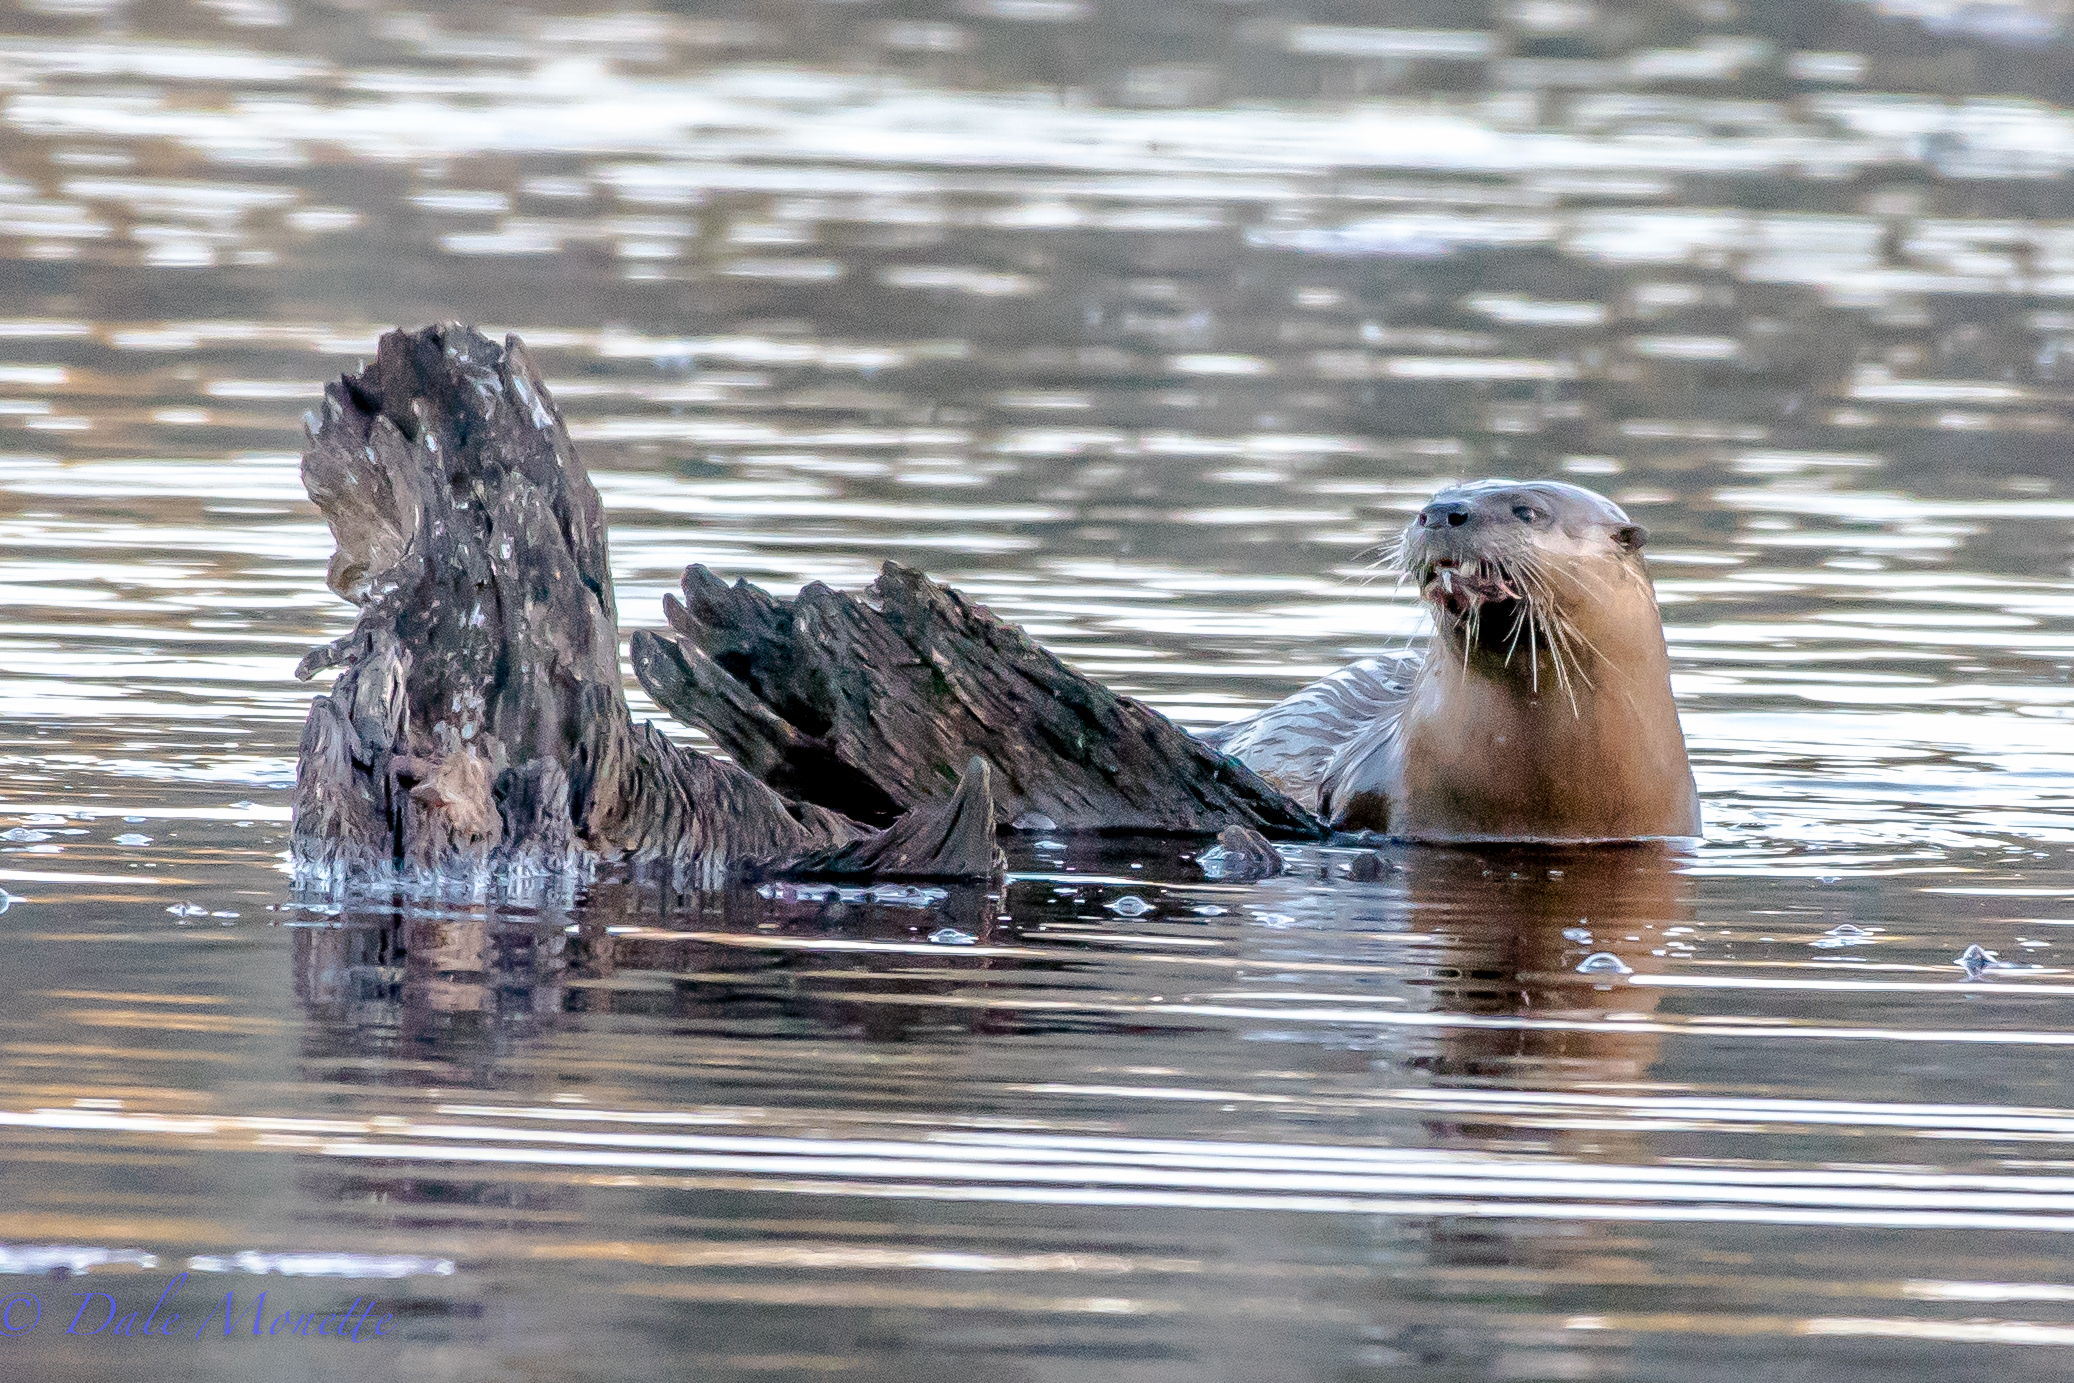 This otter popped up on the stump I usually see great blue and green herons fish from in the summer. He polished off a horn pout and left.